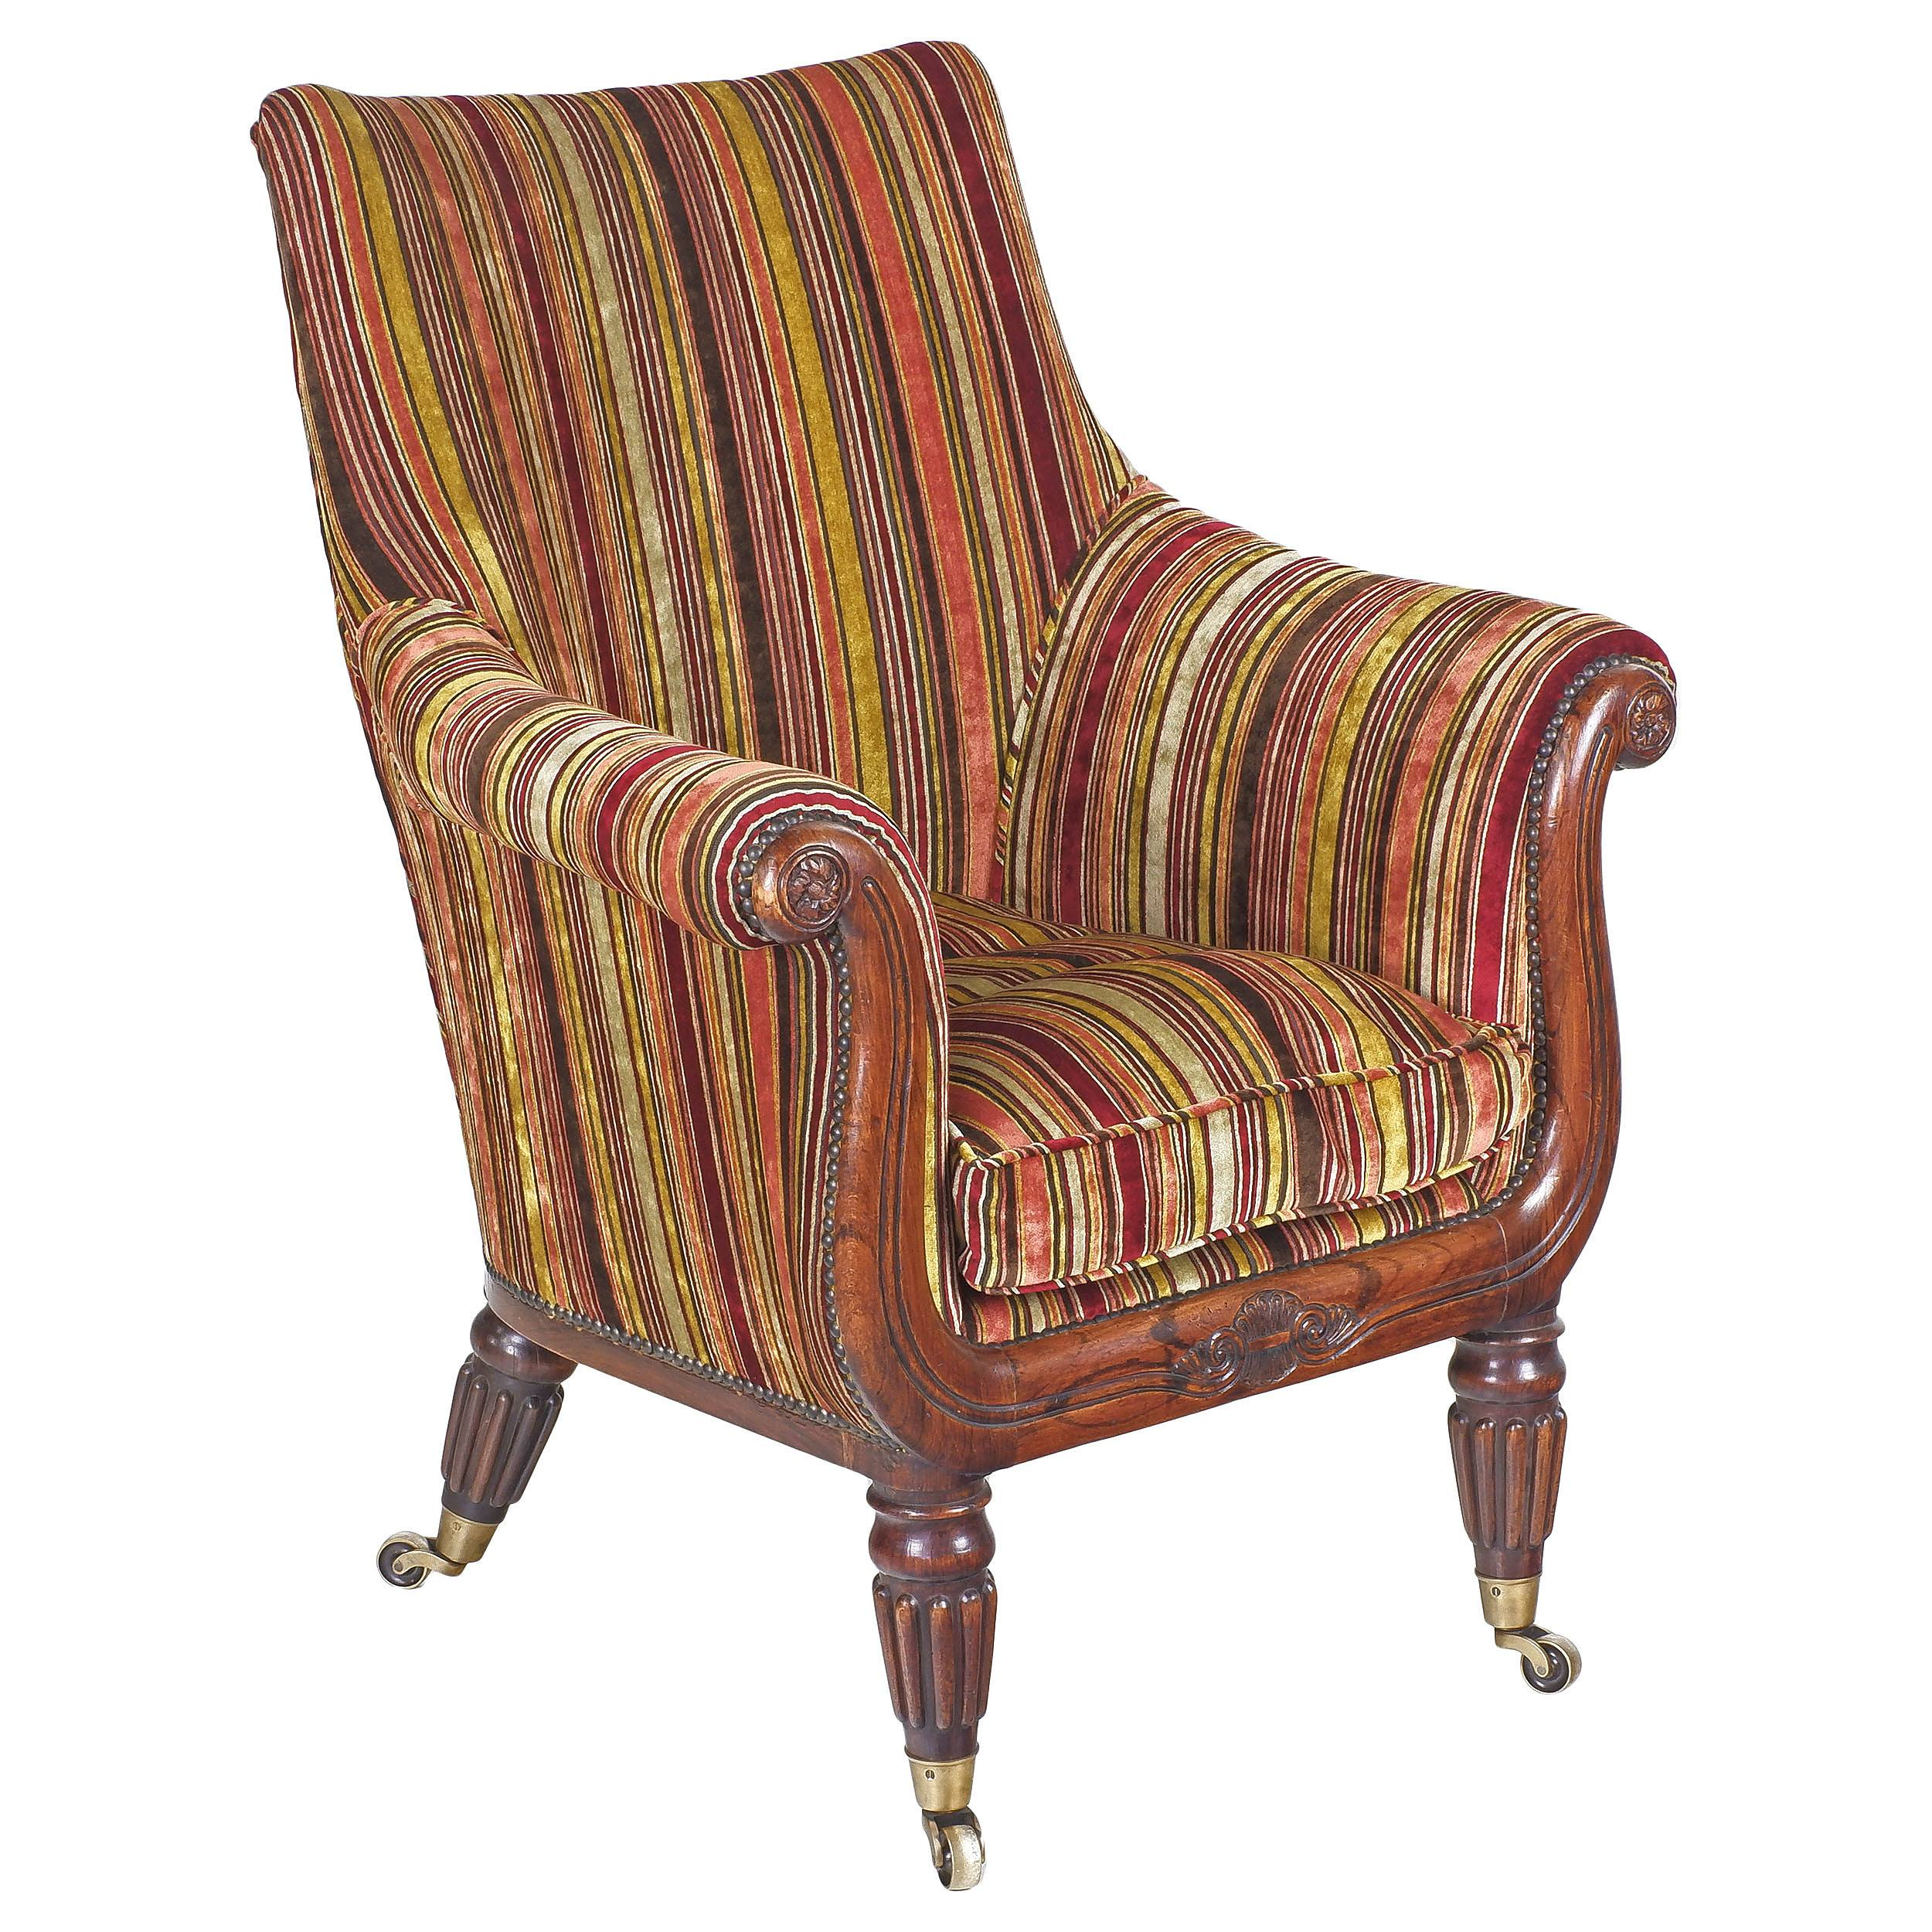 'William IV Simulated Rosewood Upholstered Salon Chair with Fabulous Upholstery Circa 1835'